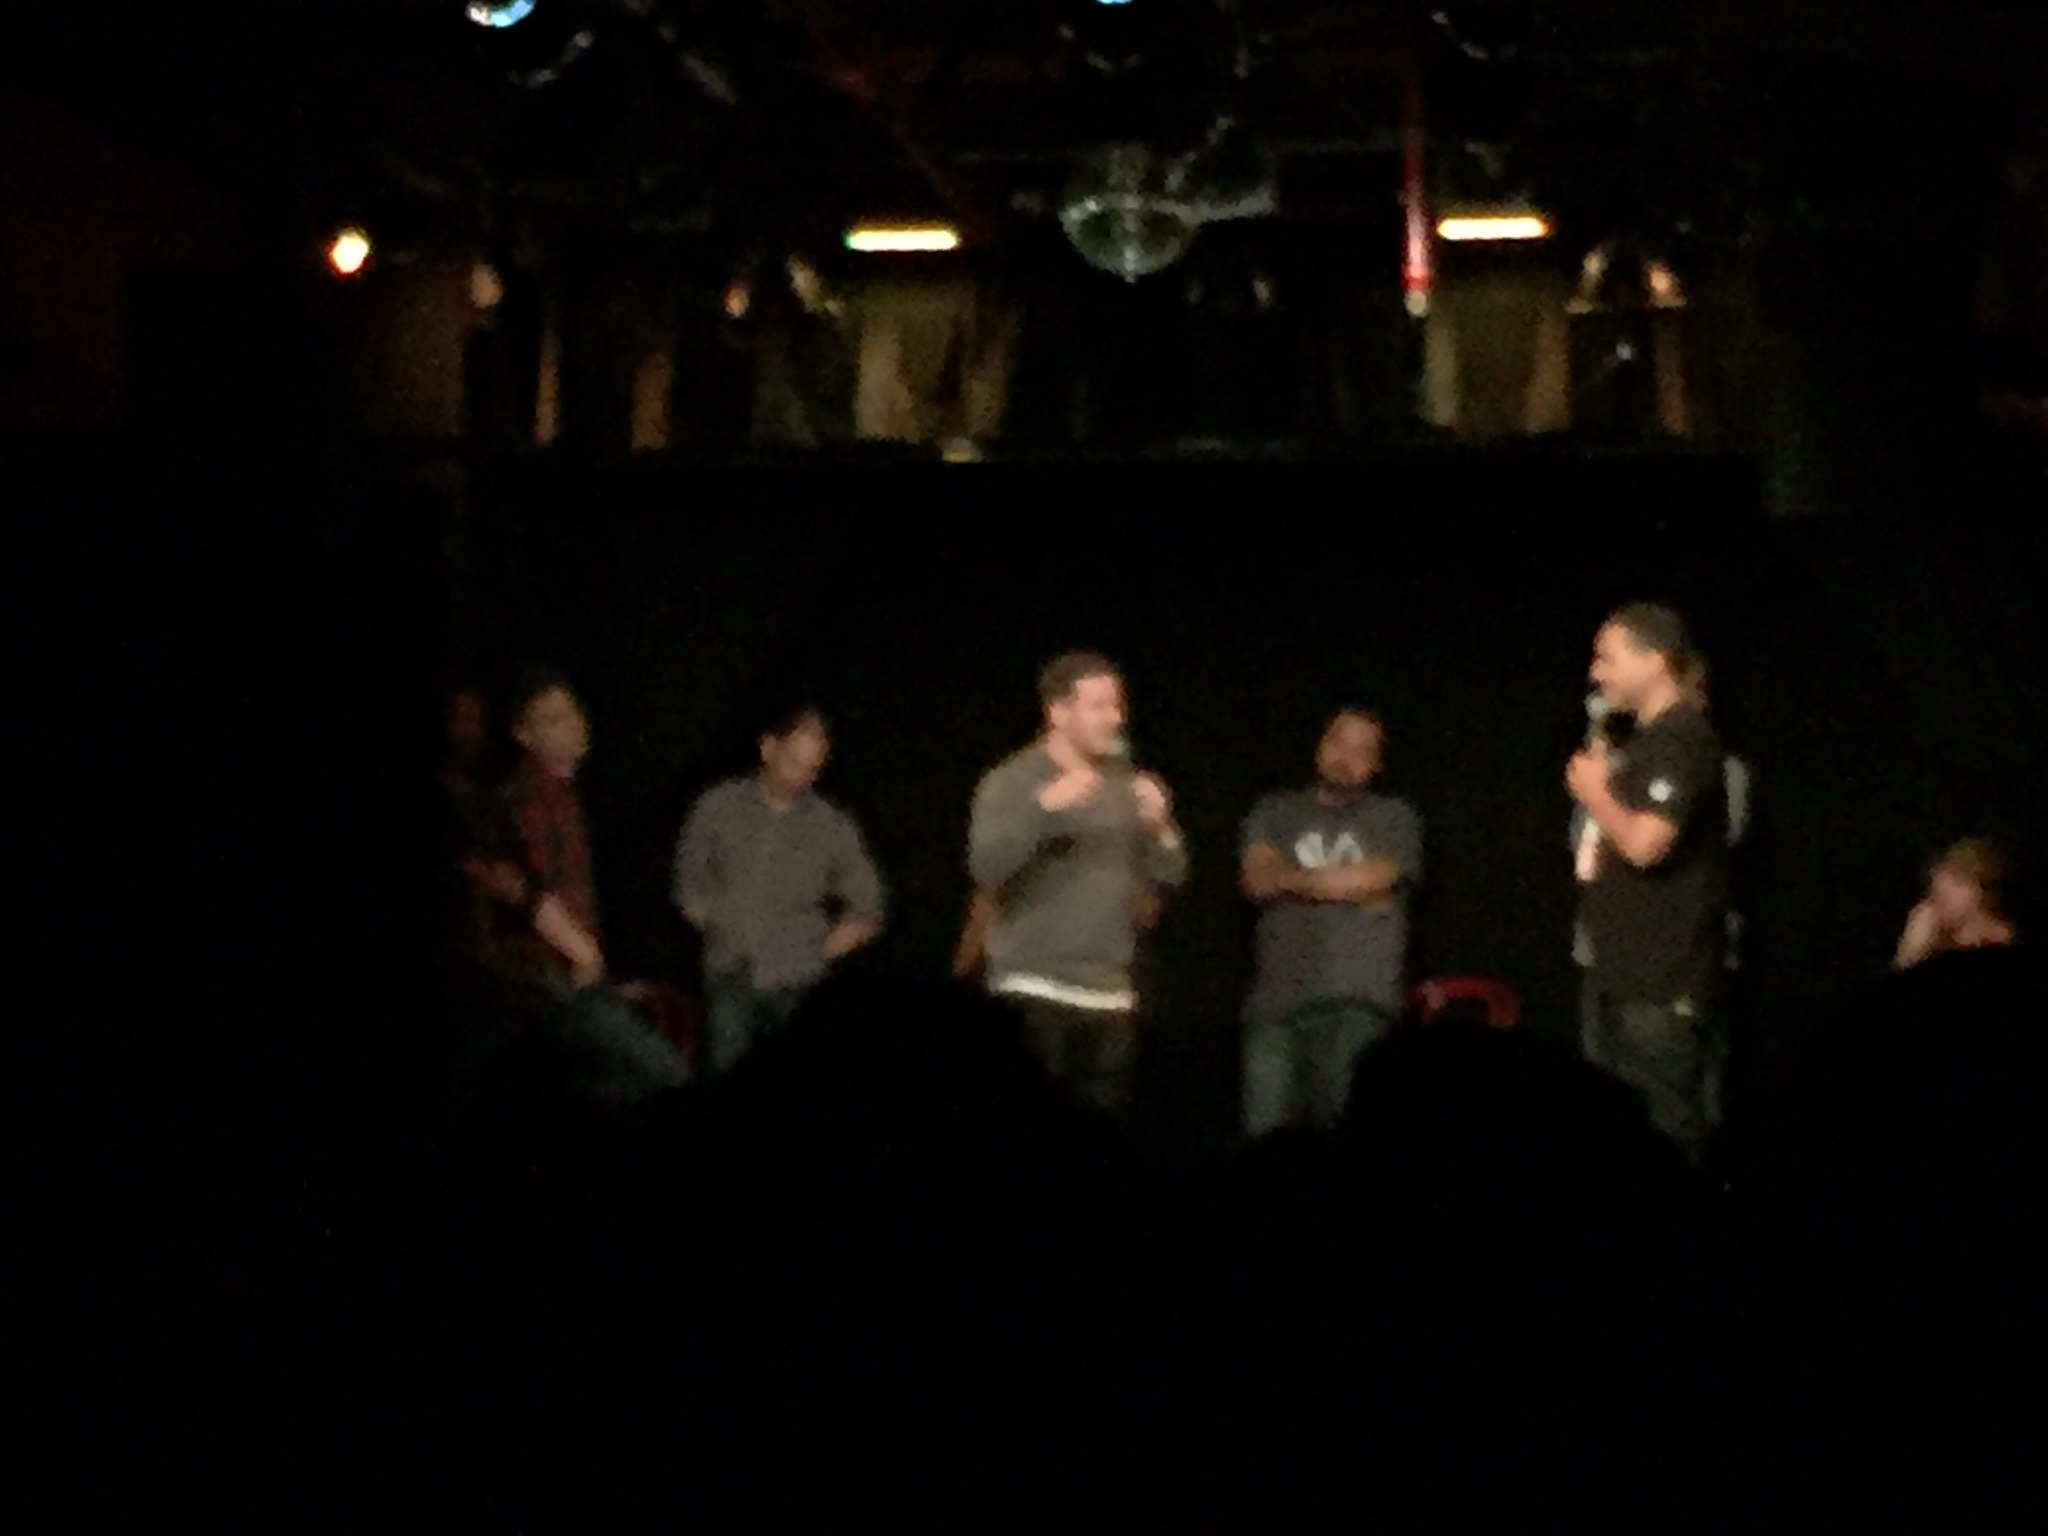 TO CLOSE OFF THE NIGHT, ITS A CRAFT BEER ($4) AND HIP HOP LEGENDS @ UPRIGHT CITIZENS BRIGADE TAKE IT PERSONAL SHOW ($10)    ALWAYS AMAZING, HILARIOUS & GUESTS VARY FROM TCHAINZ TO VINNY FROM JERSEY SHORE. YASSSS